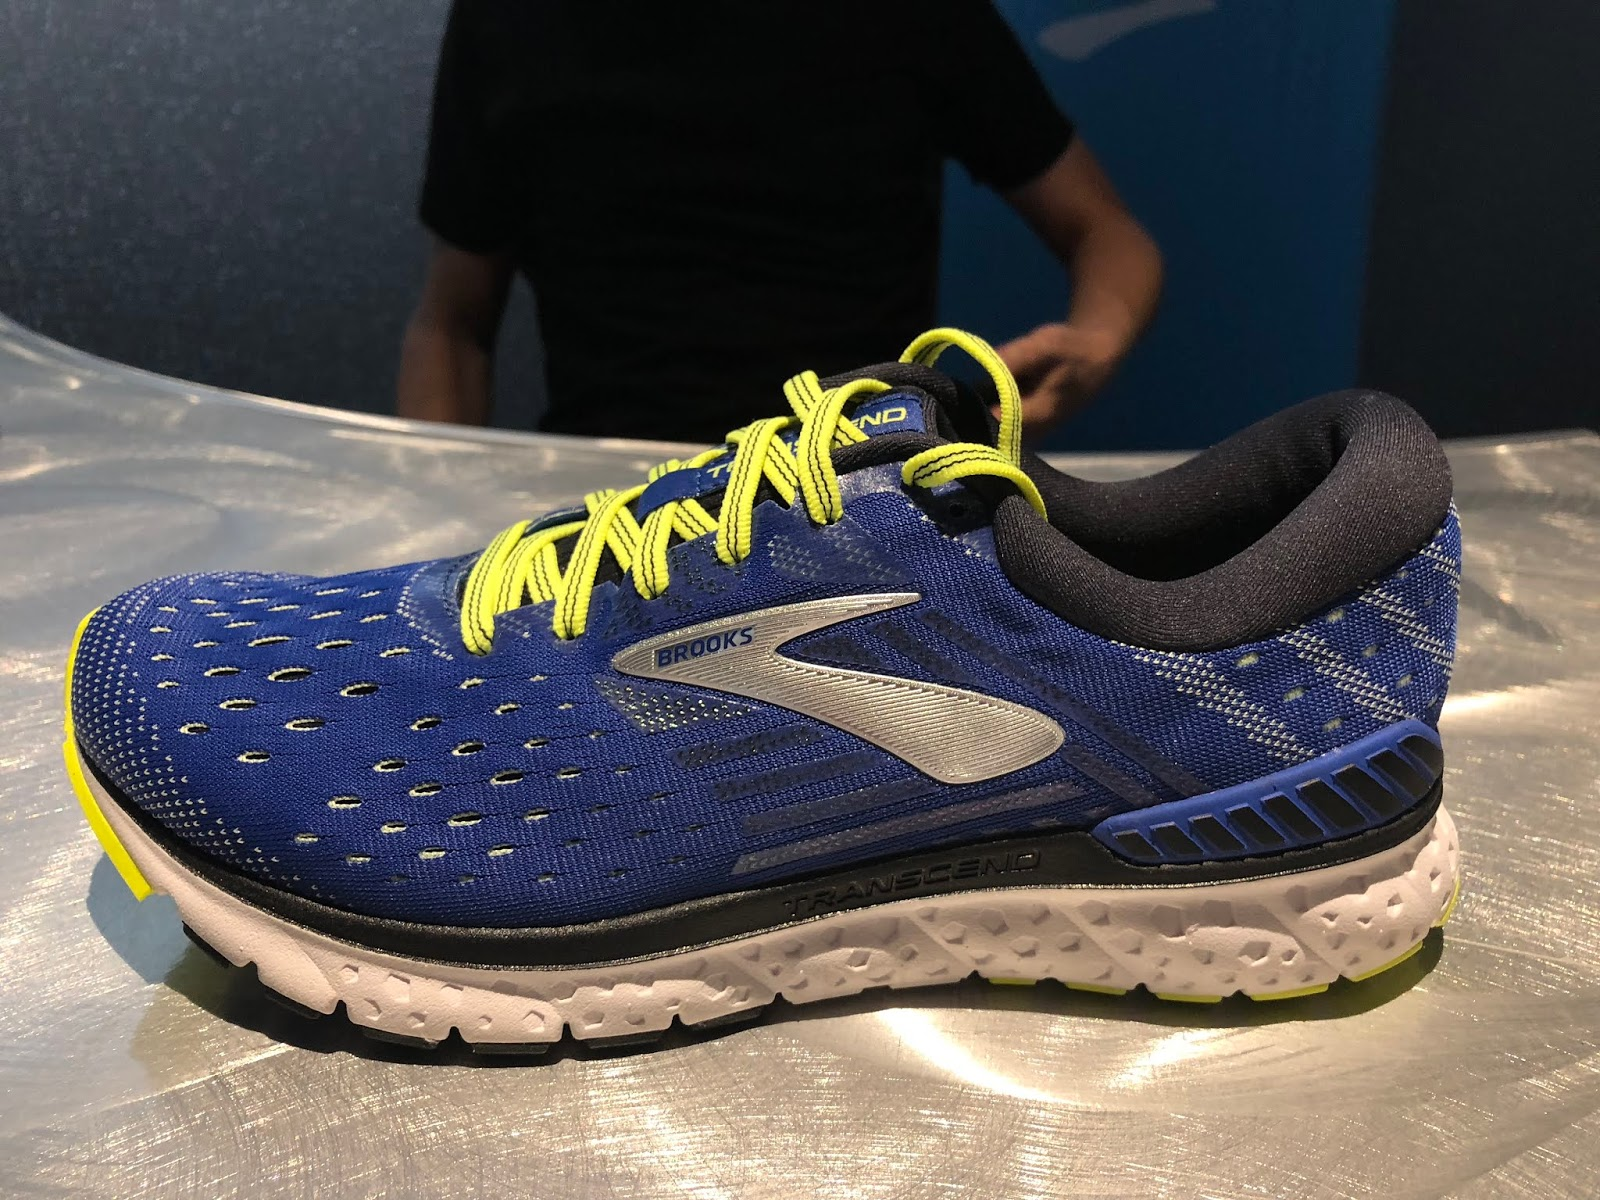 ad6e9df161a Joining the Glycerin the Transcend 6 gets a full length DNA Loft midsole so  we expect a yet softer and livelier ride with near neutral shoe  characteristics ...